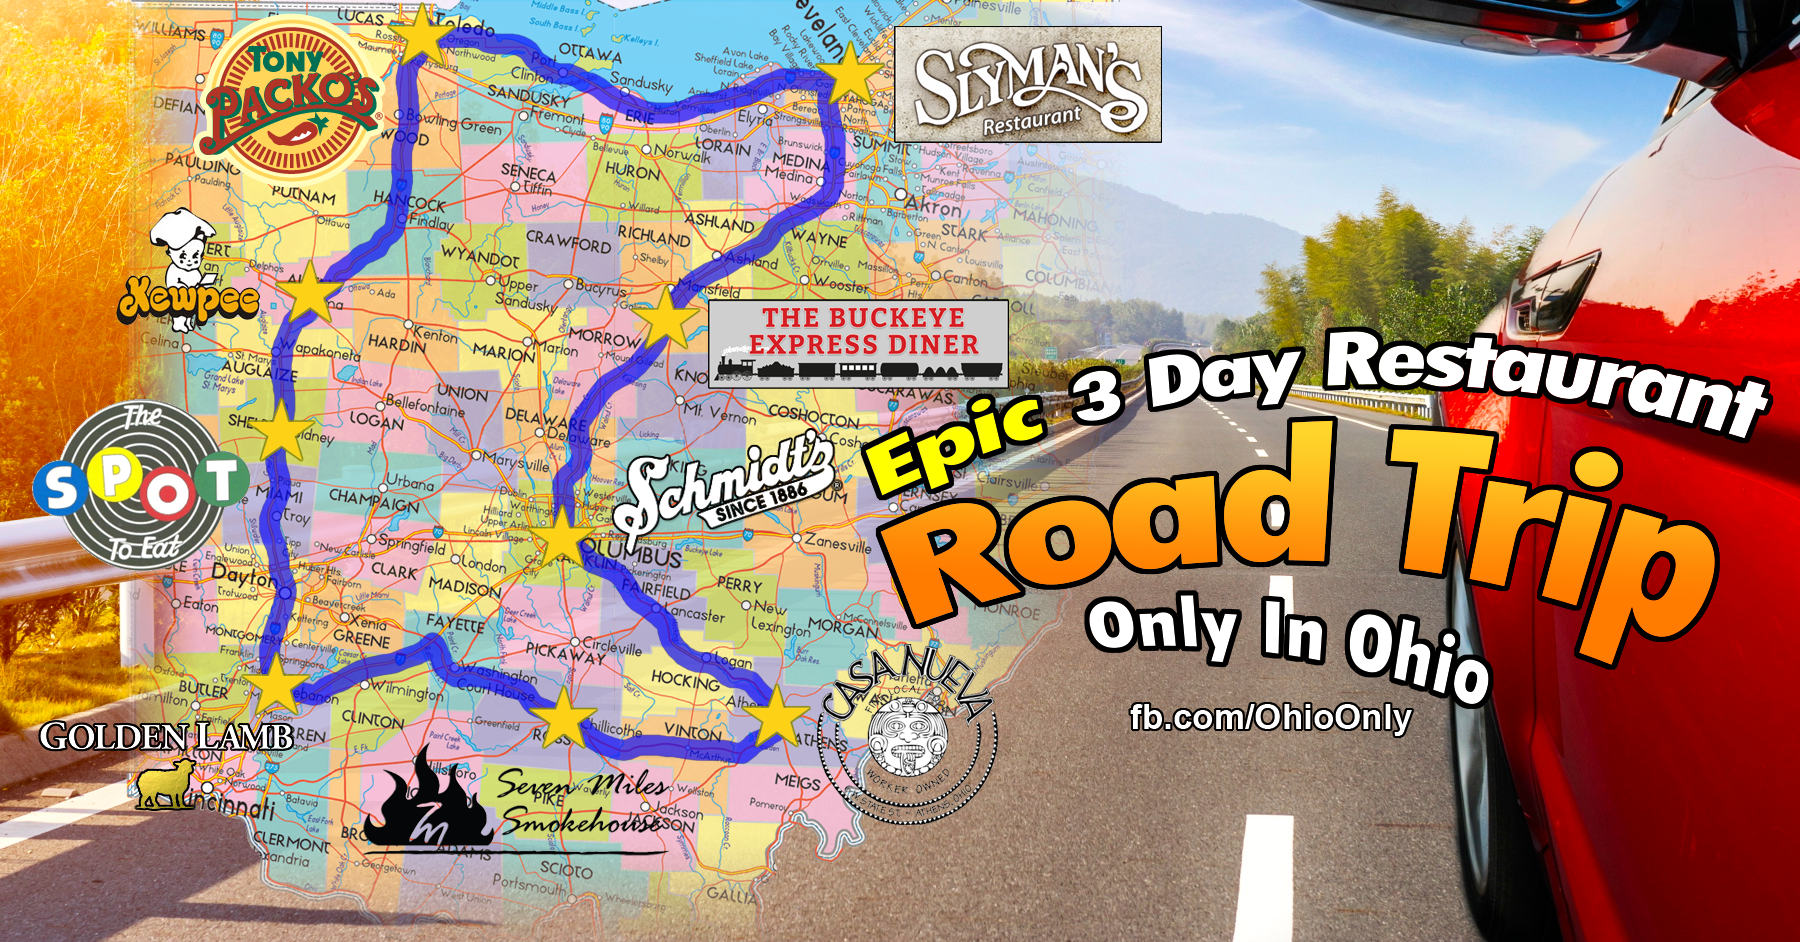 This Epic 3 Day Restaurant Road Trip In Ohio Will Make